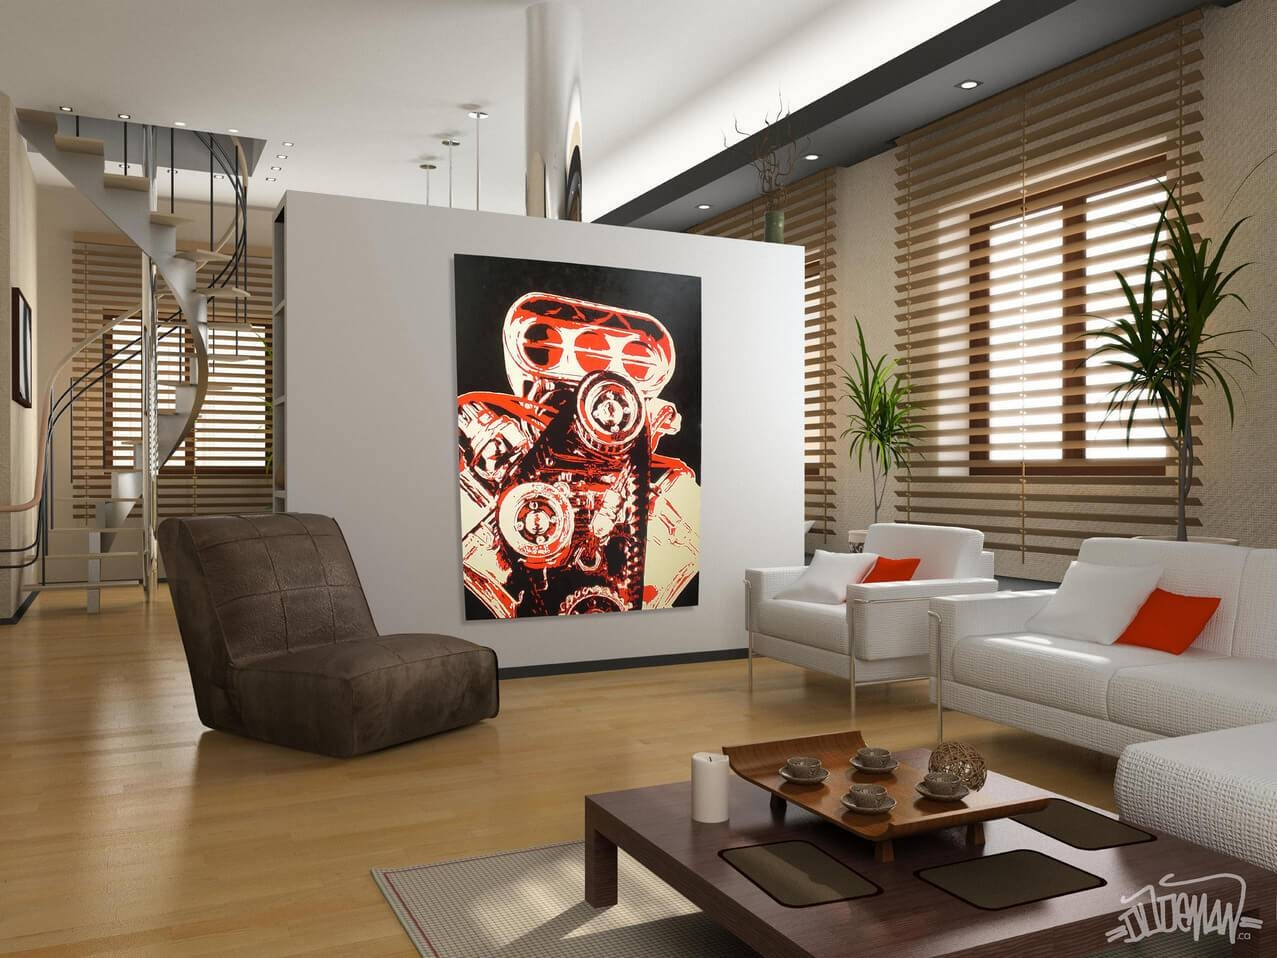 Living Room: – Wall Art For Living Room | Wall Art For A Small With Best And Newest Exclusive Wall Art (View 10 of 20)